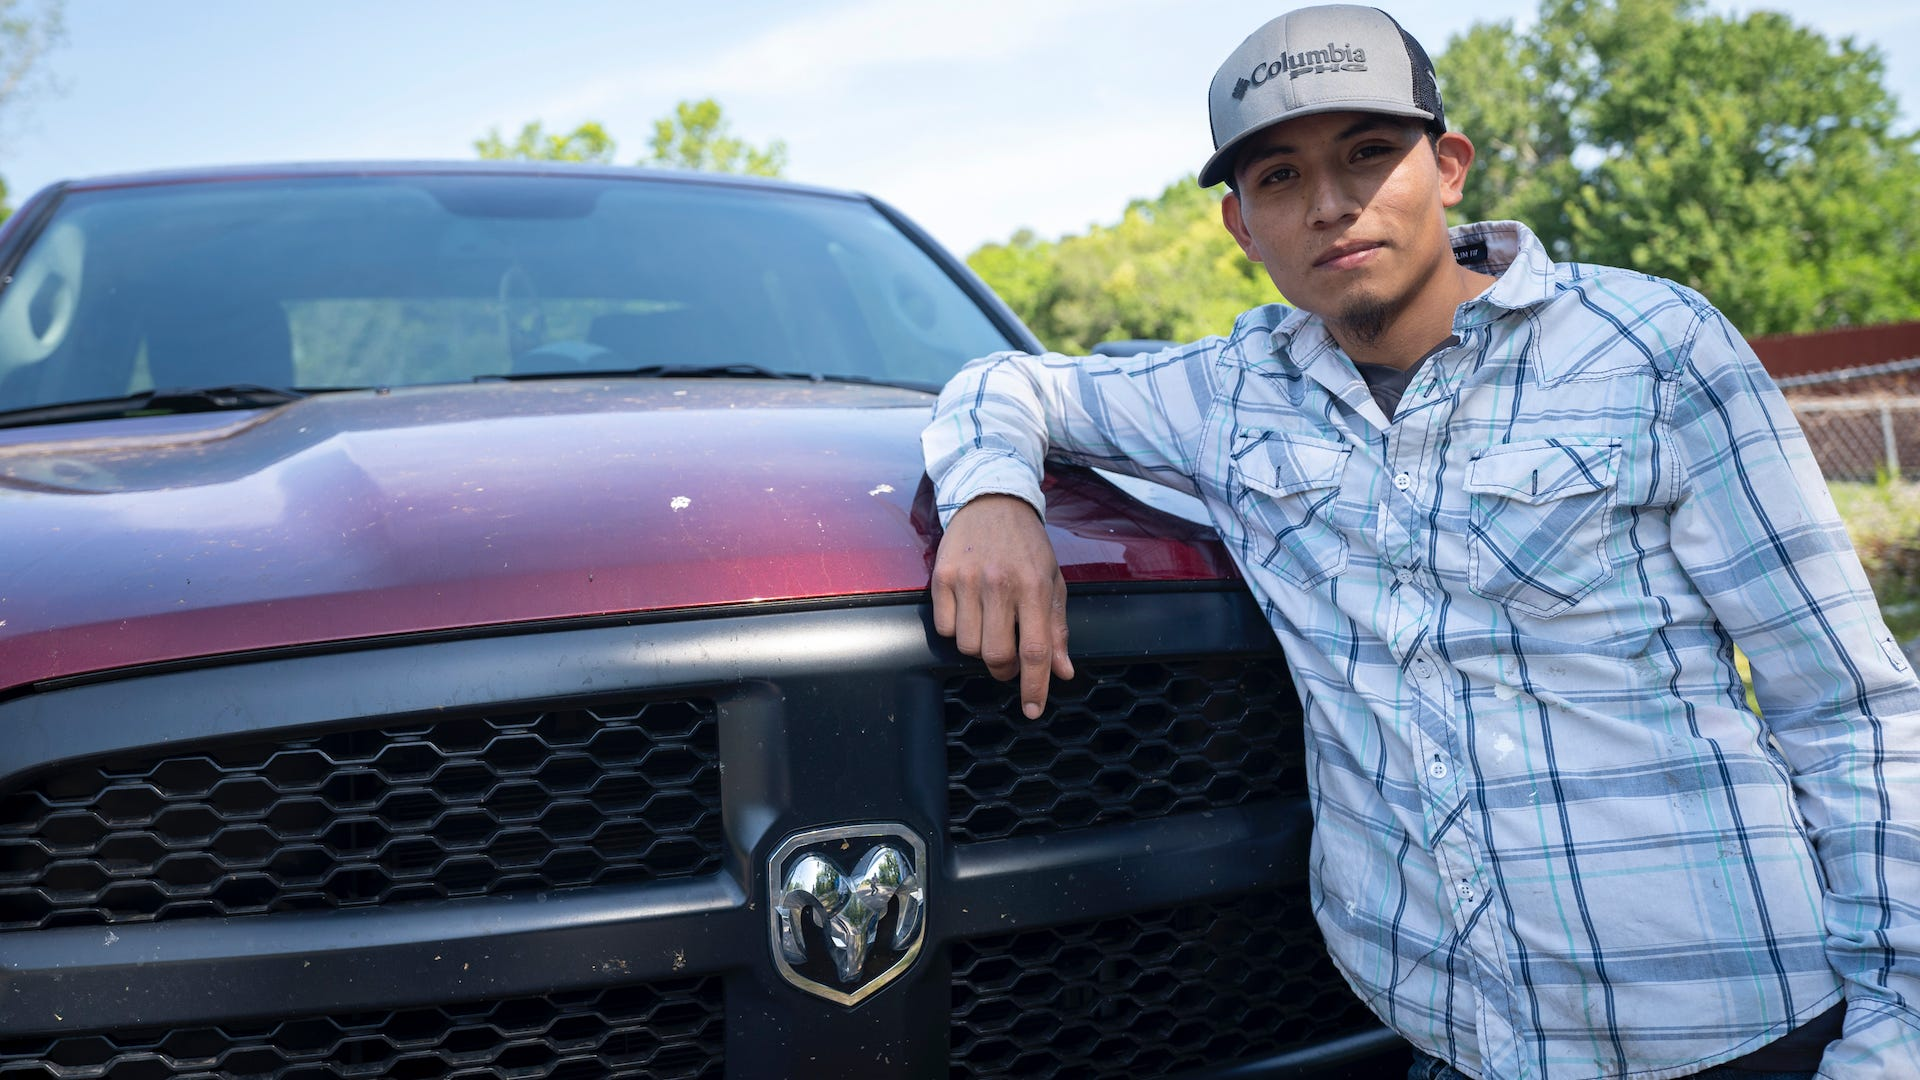 'A dream come true': The life of an unaccompanied teen migrant, ten years later